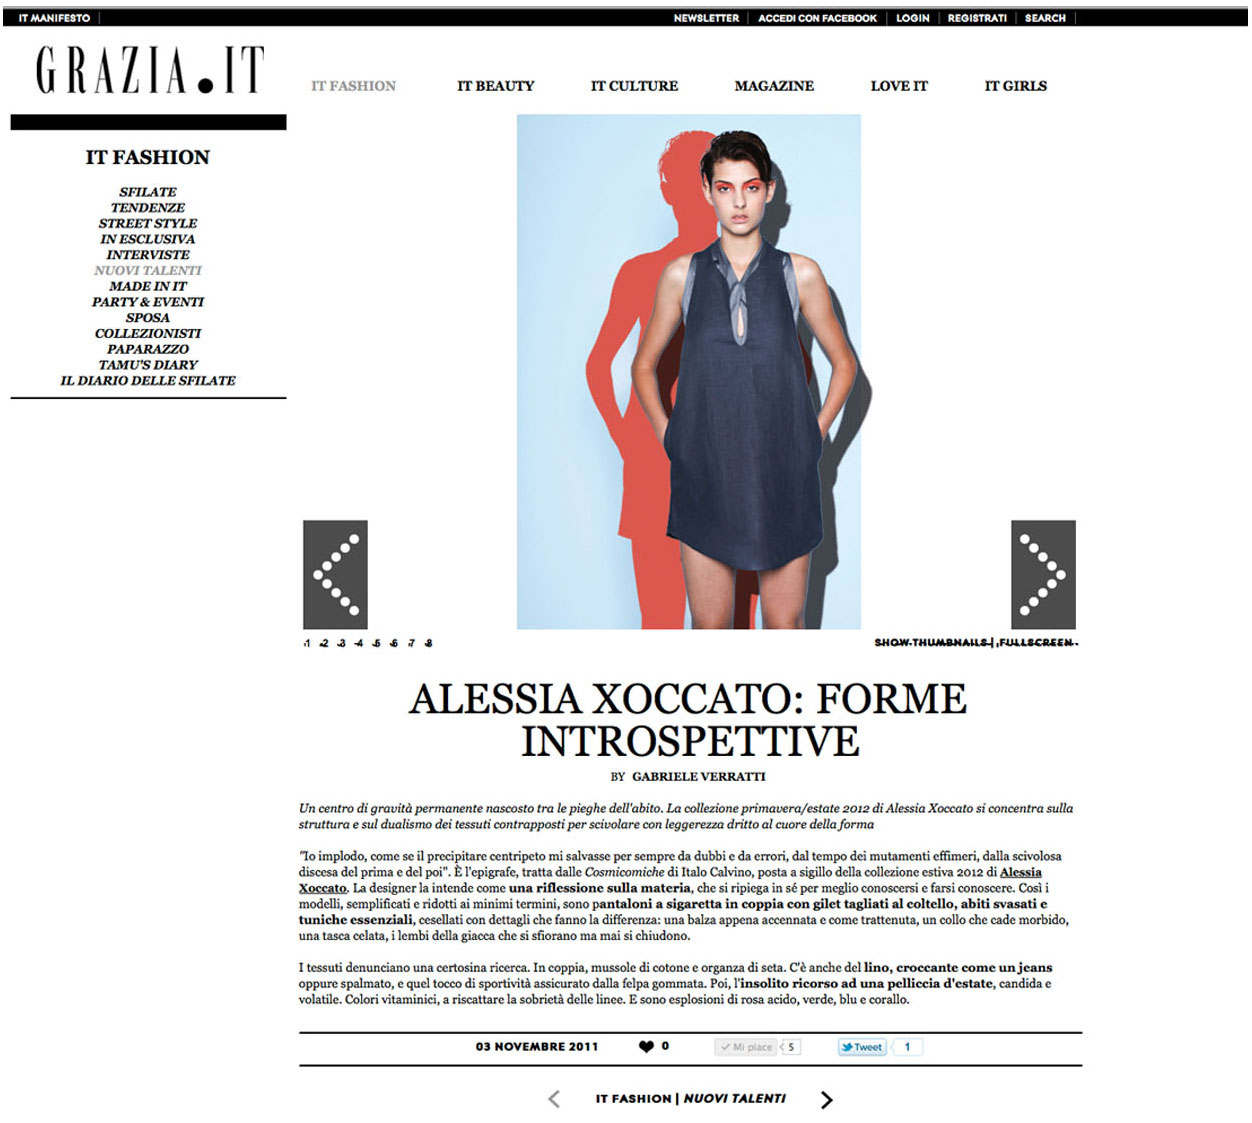 Alessia Xoccato 2012_03_Grazia.it-copy 2012